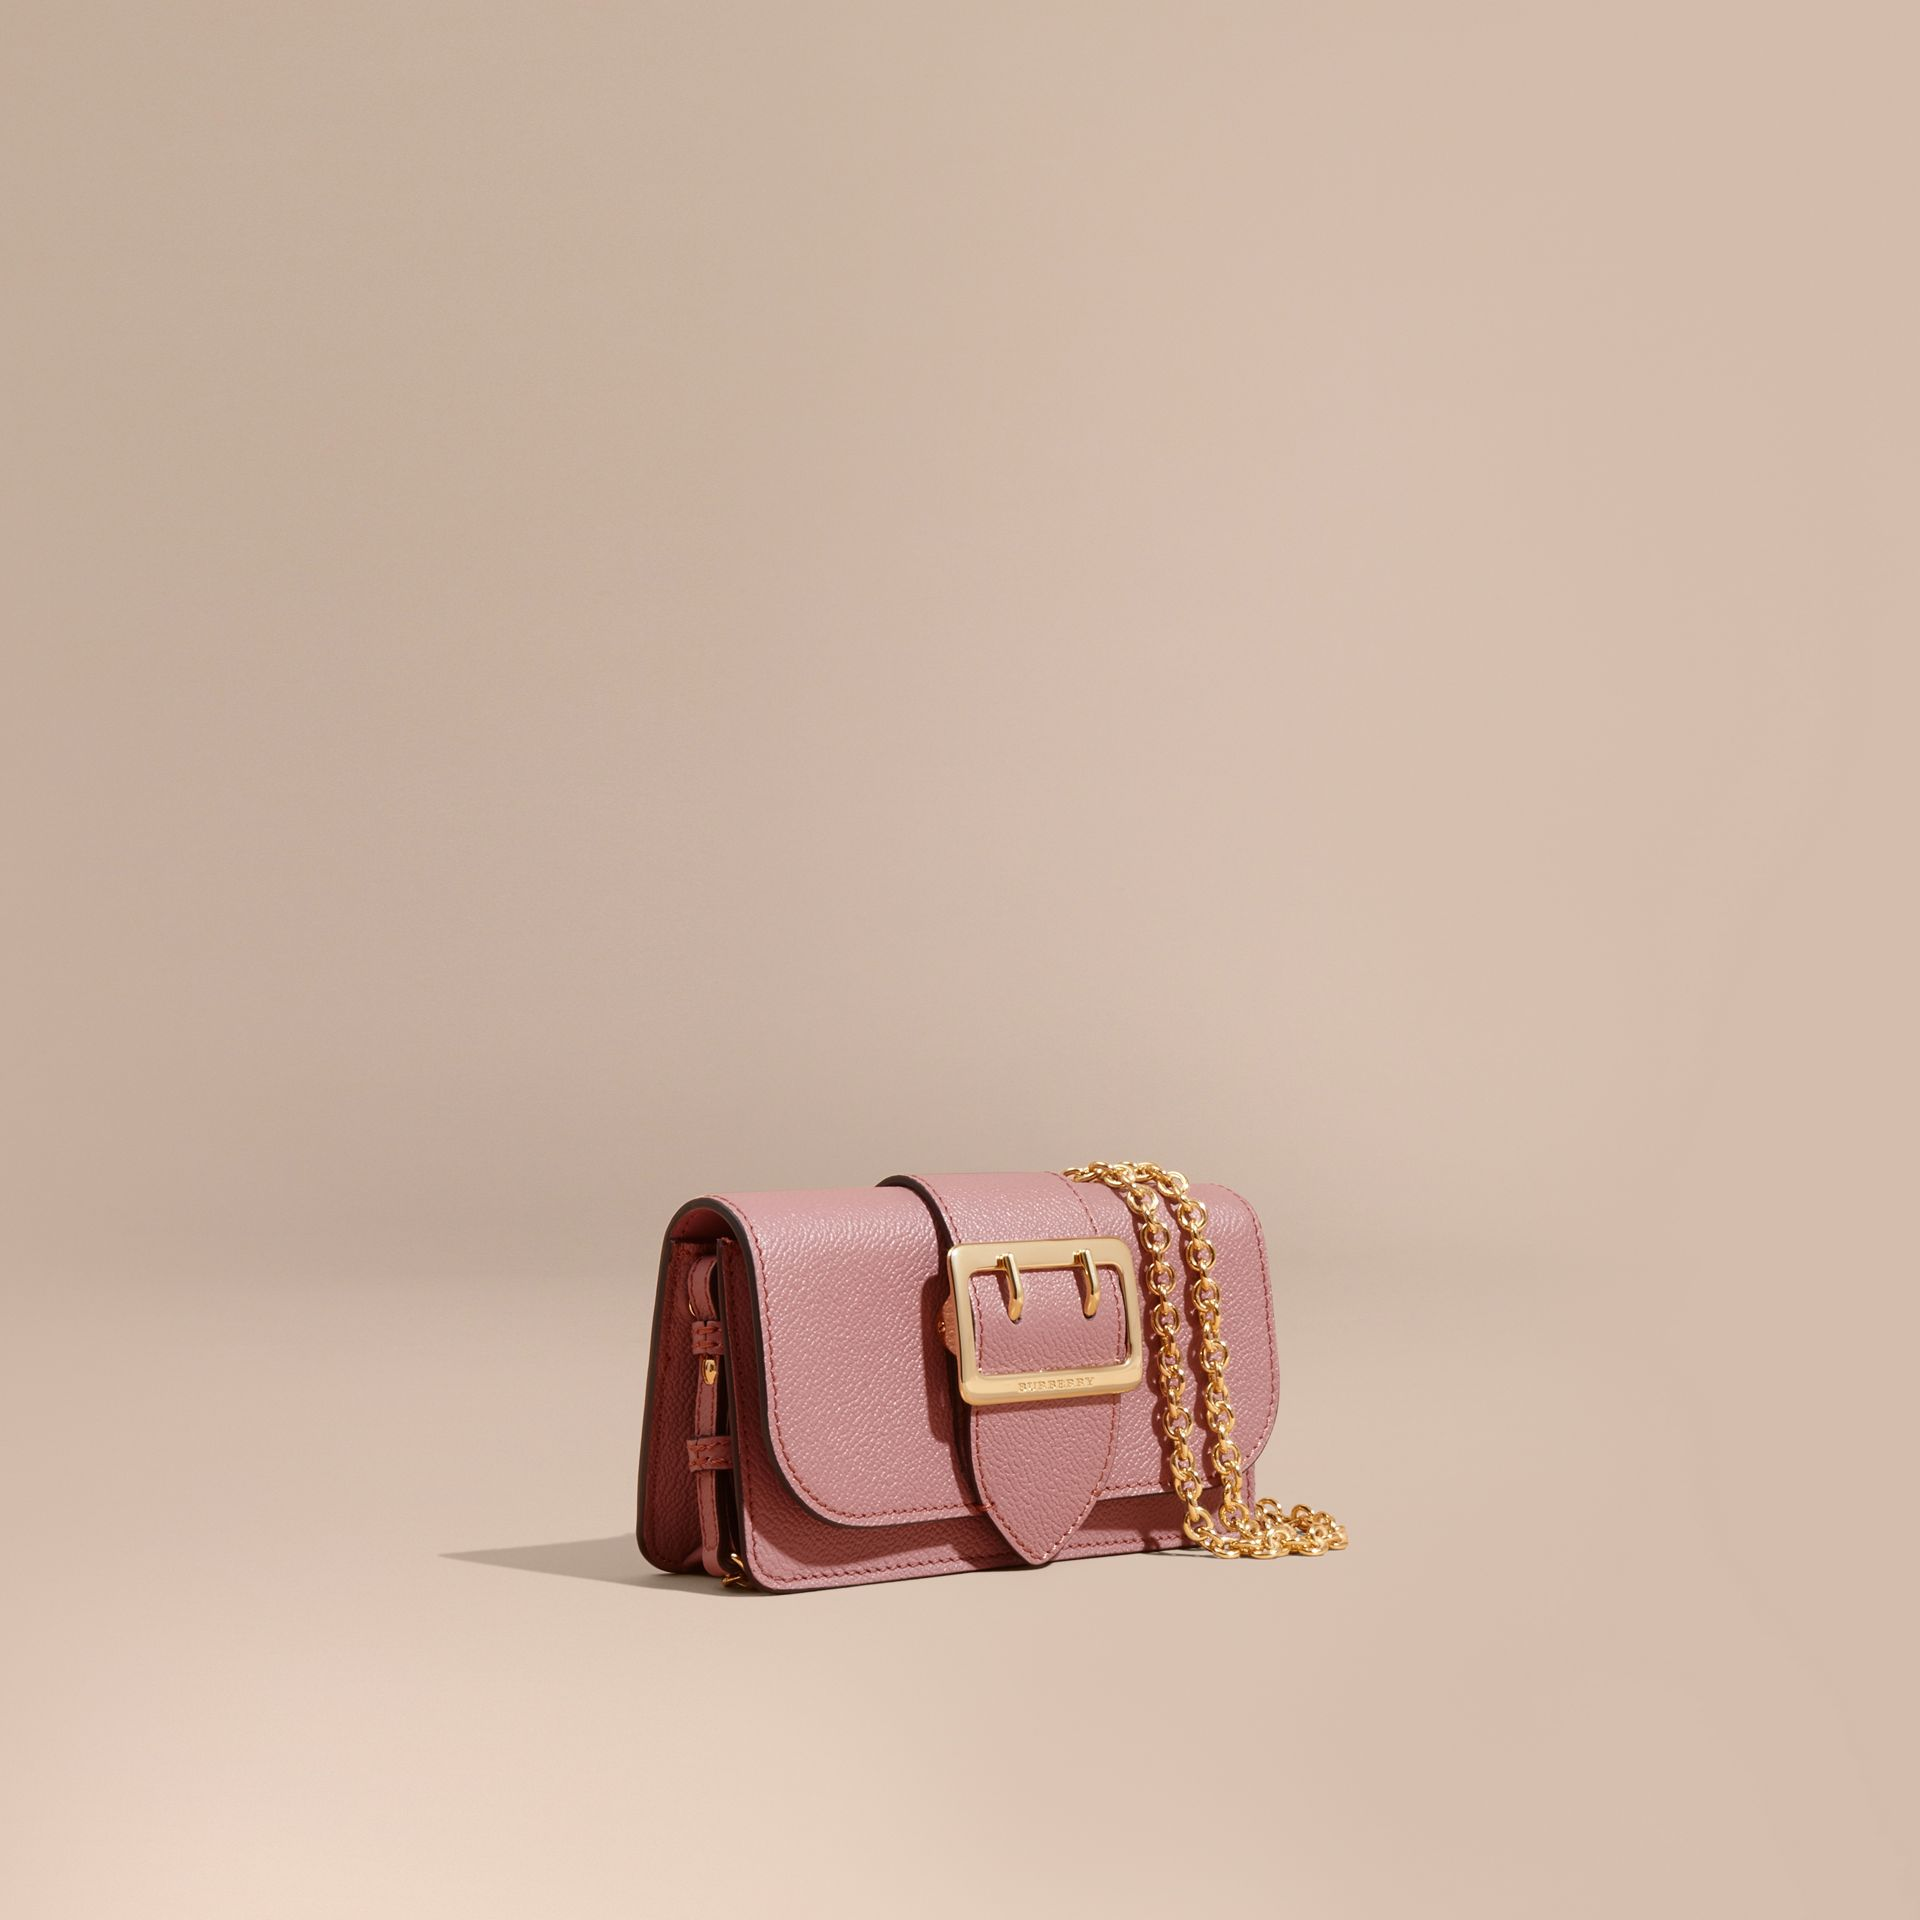 The Mini Buckle Bag in Grainy Leather in Dusty Pink - Women | Burberry - gallery image 1